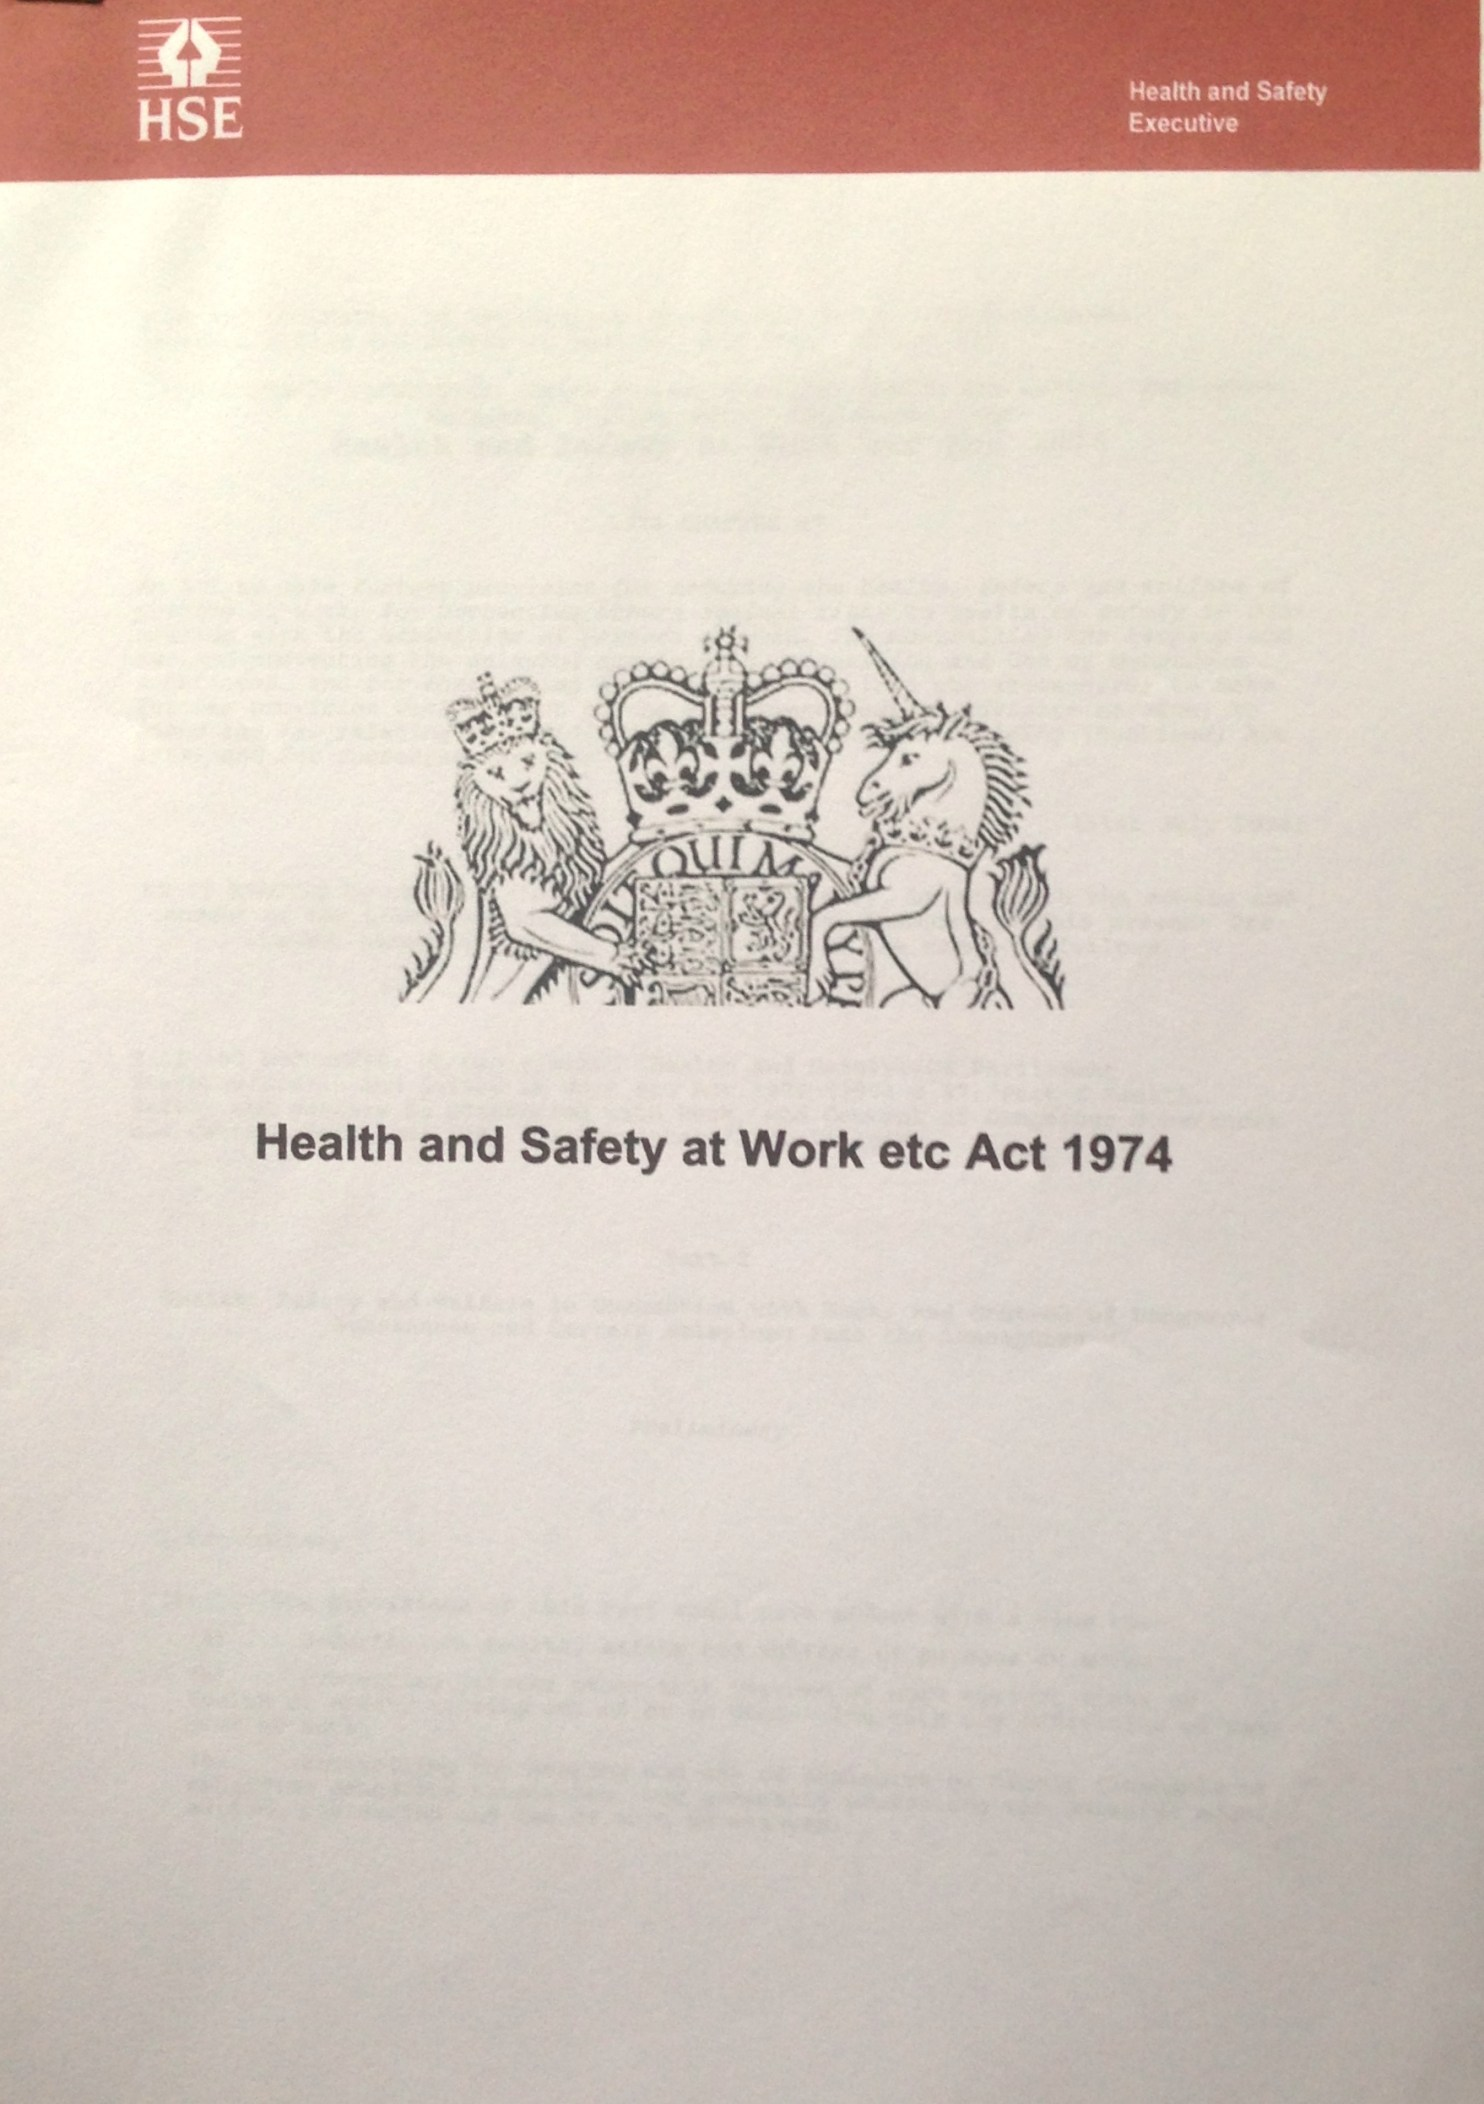 CPDG Health and Safety act 1974